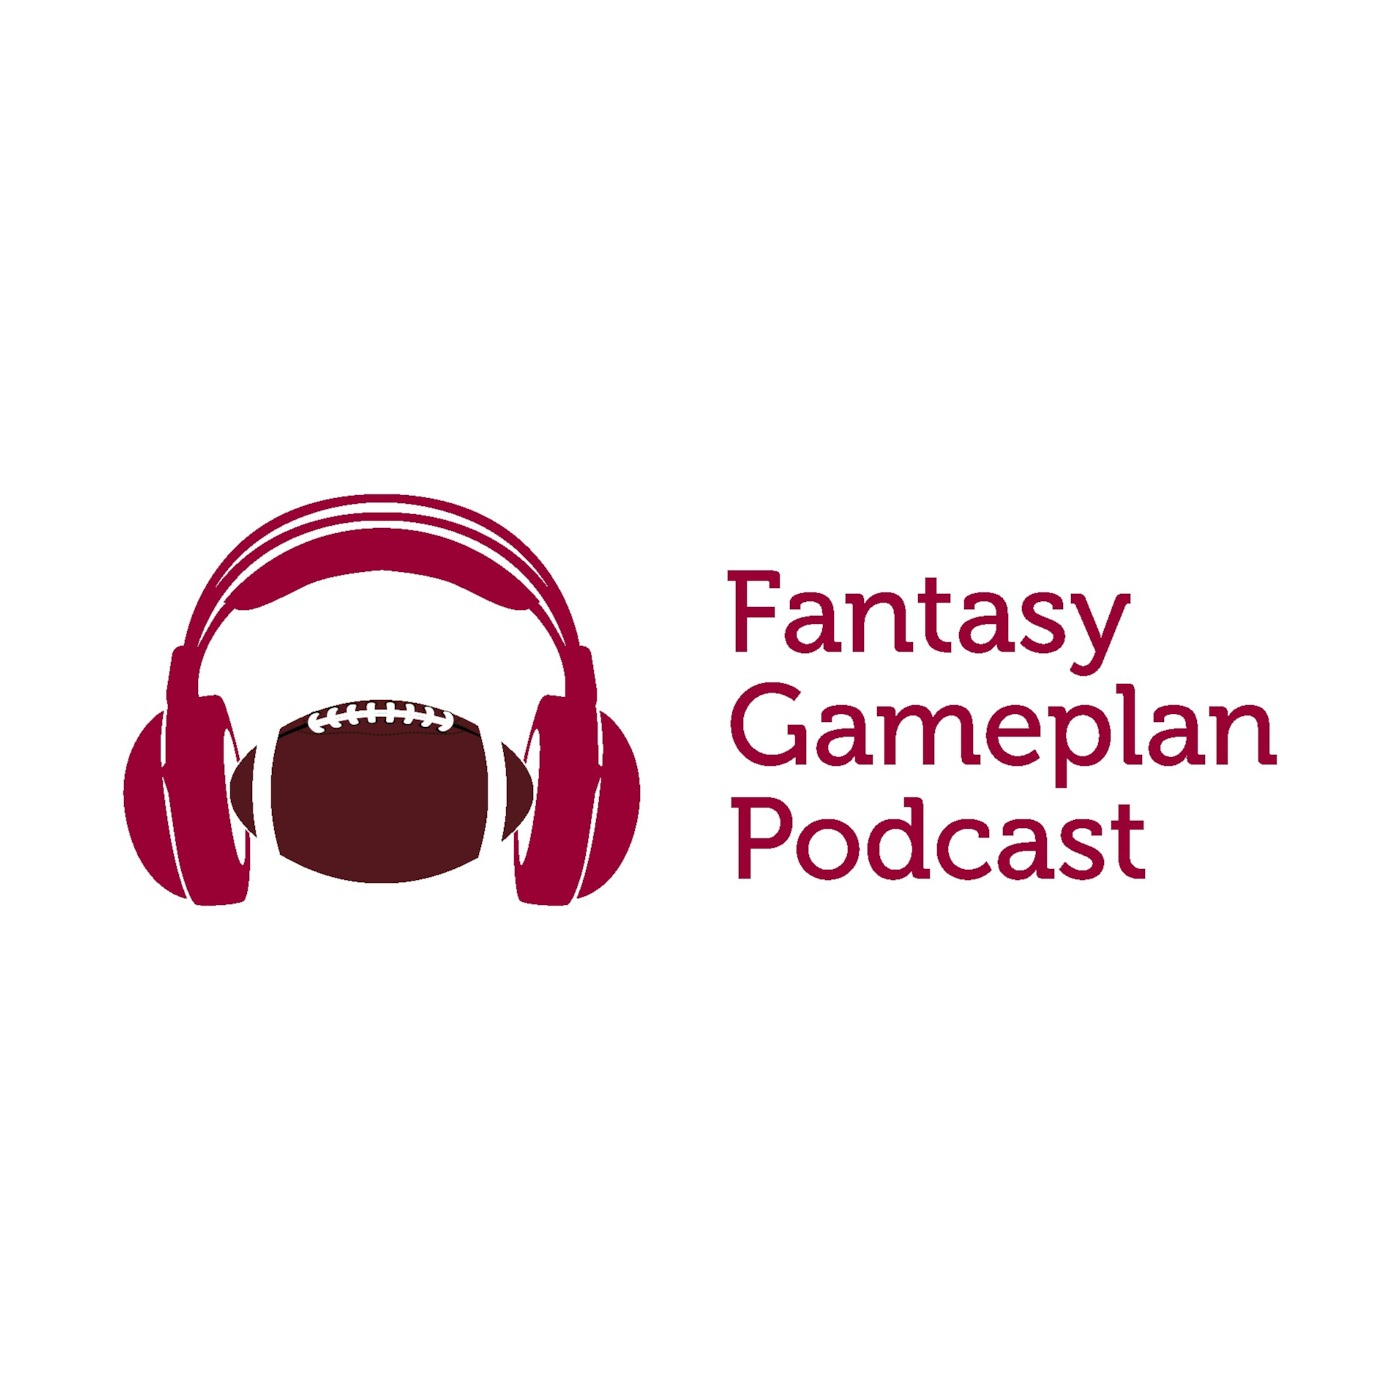 Fantasy Gameplan Podcast